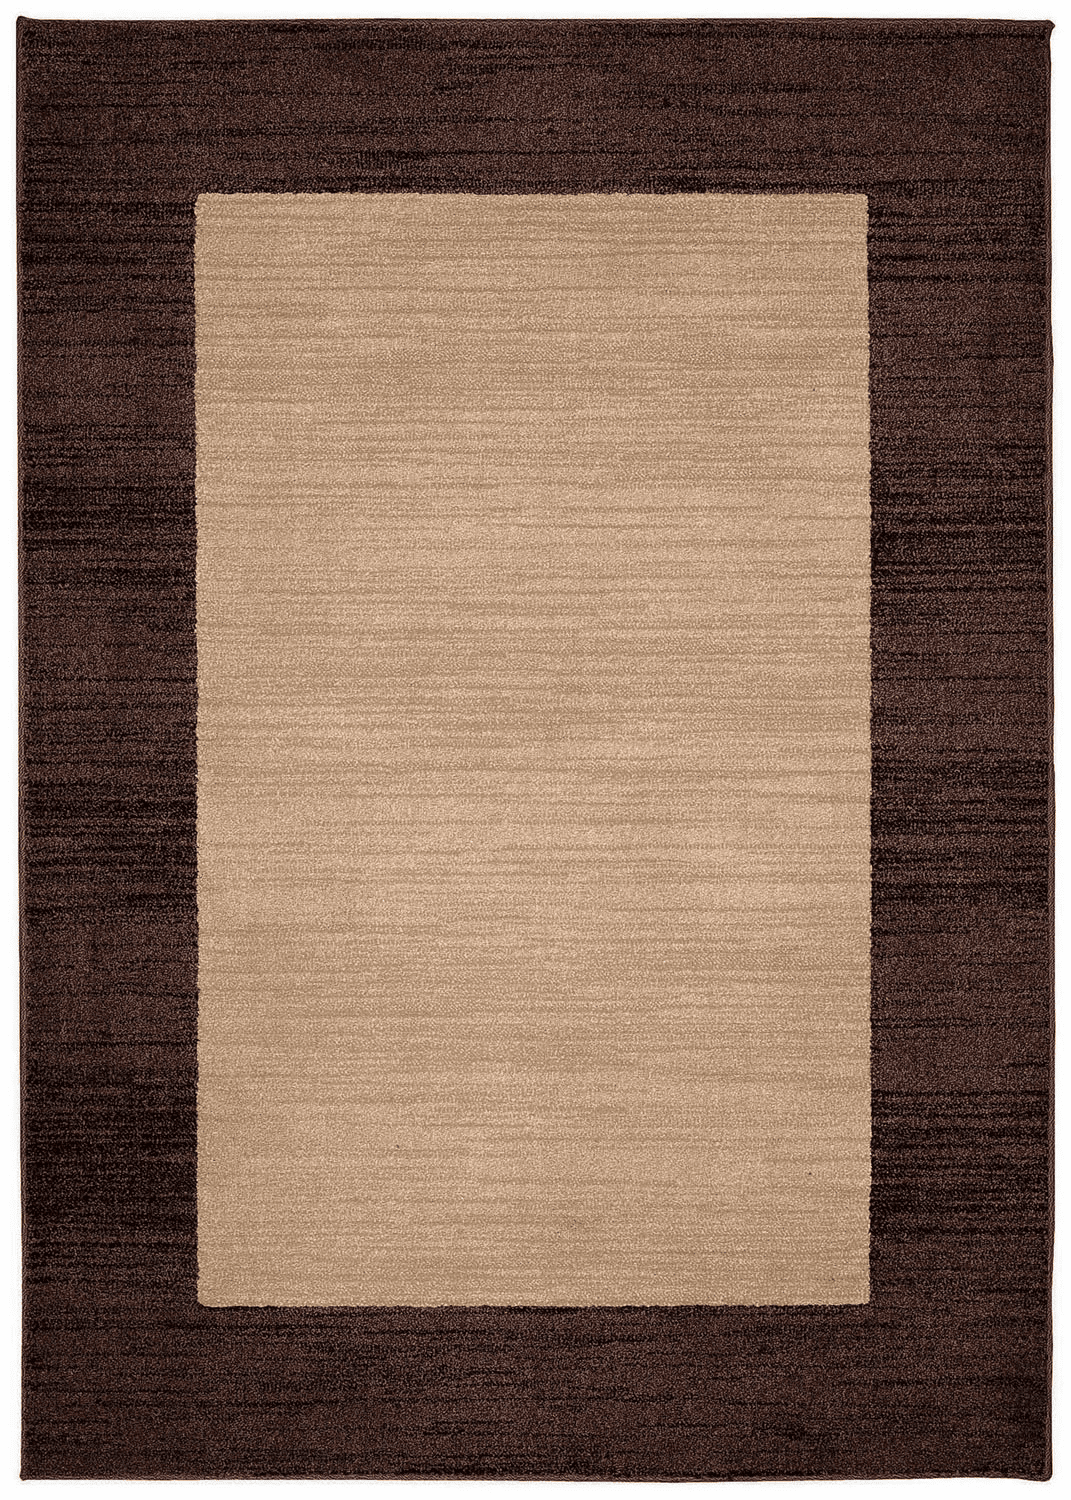 Machine Woven Light Tan Rug